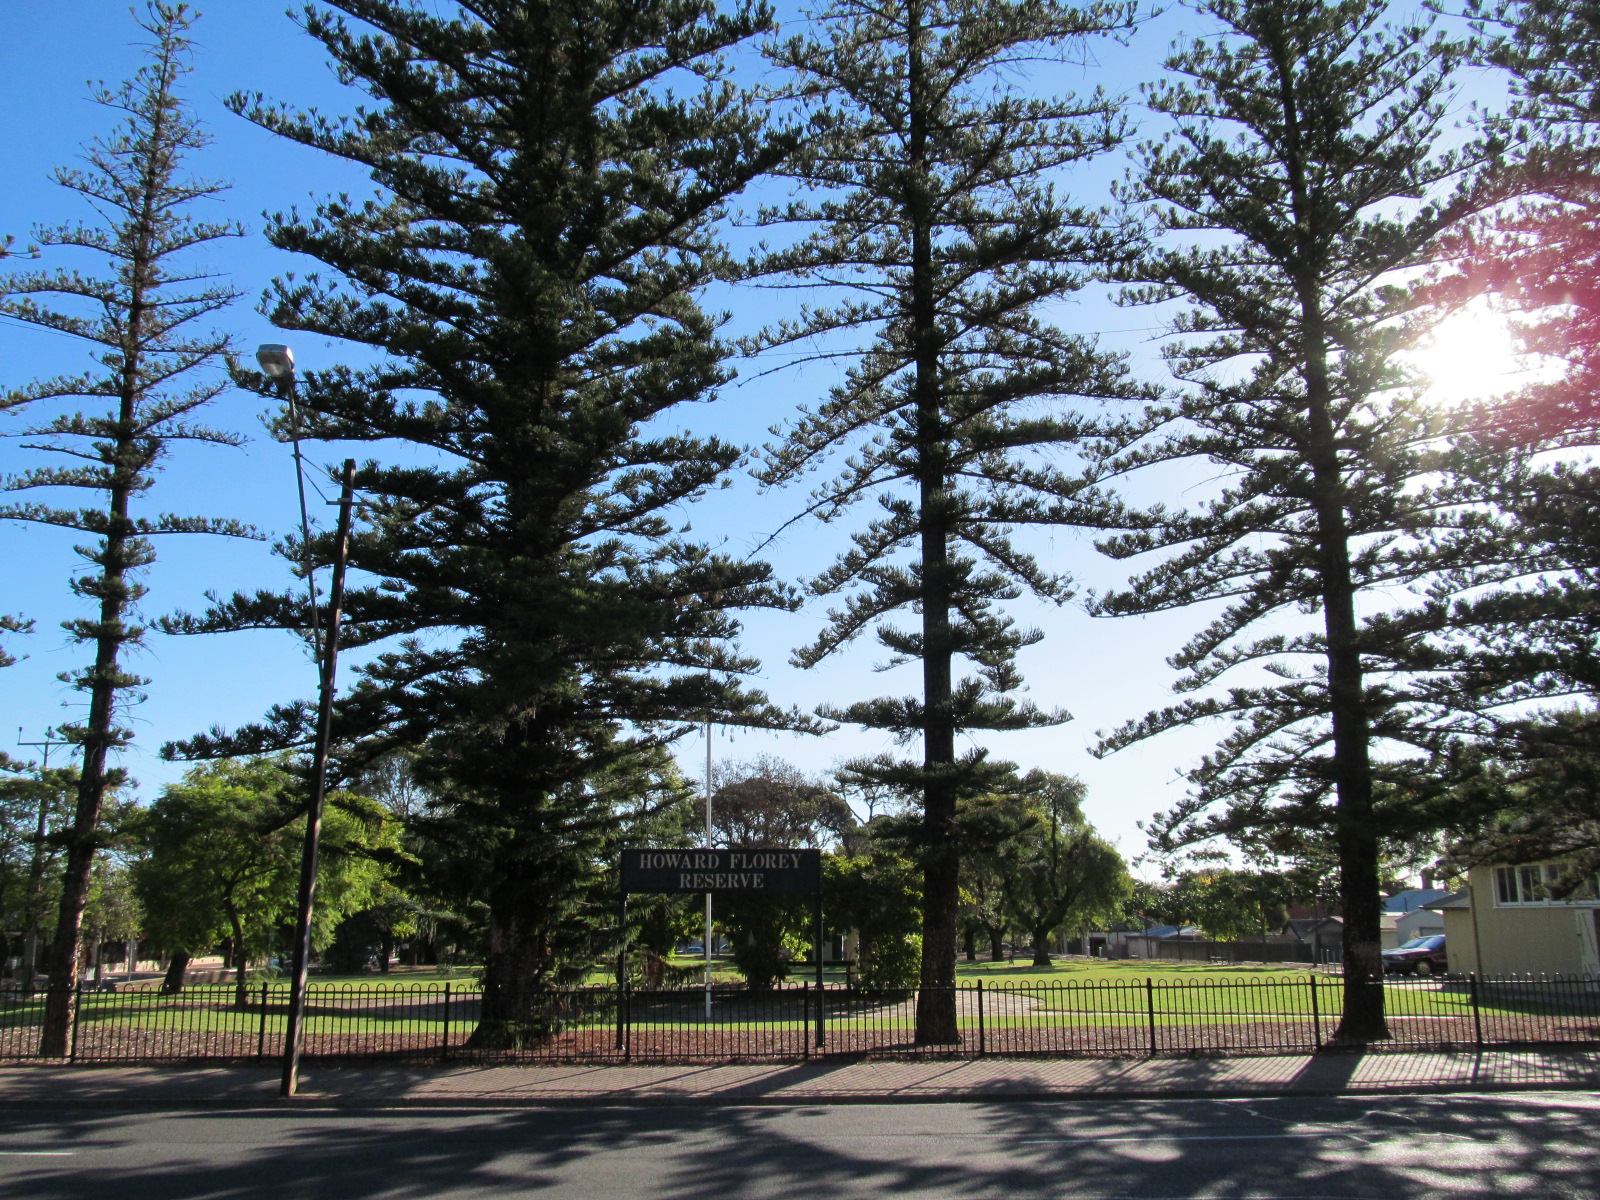 Howard Florey Reserve